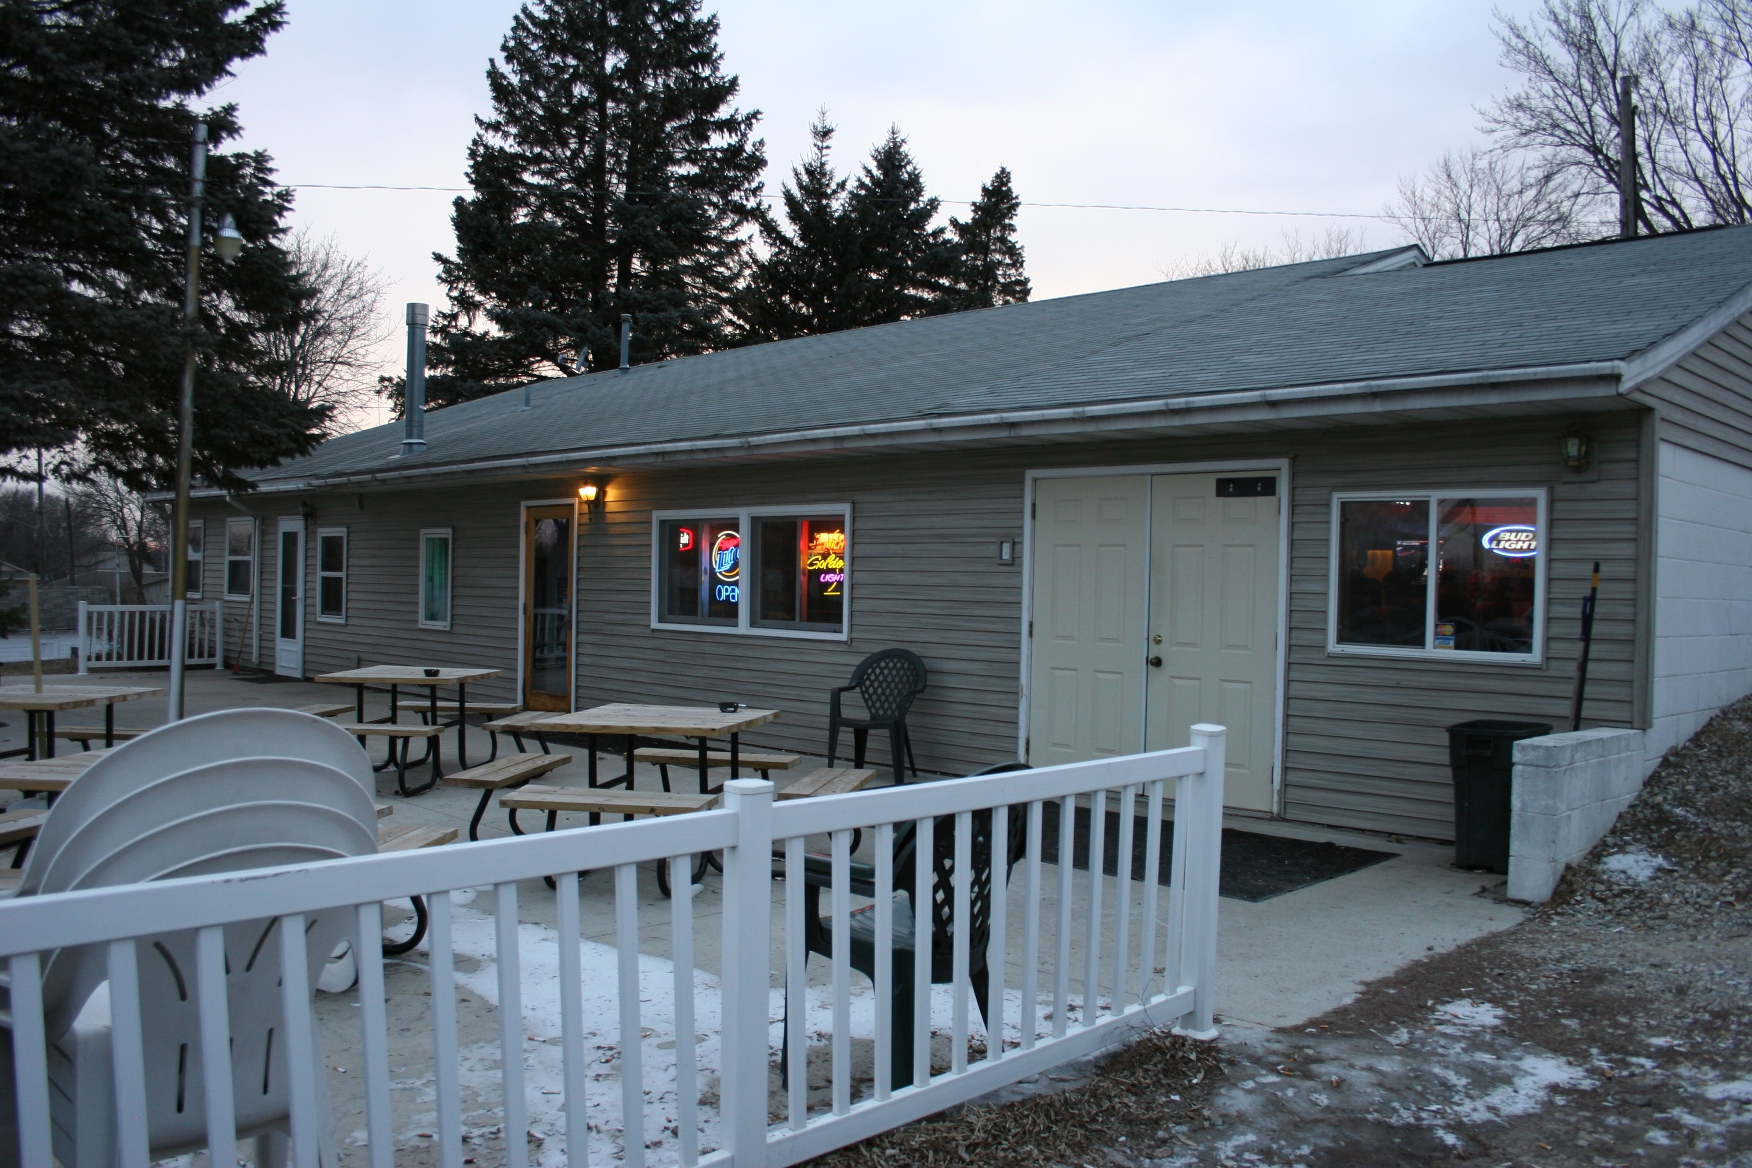 I expect in warm weather, the front patio is a popular dining and drinking spot at the Hole.